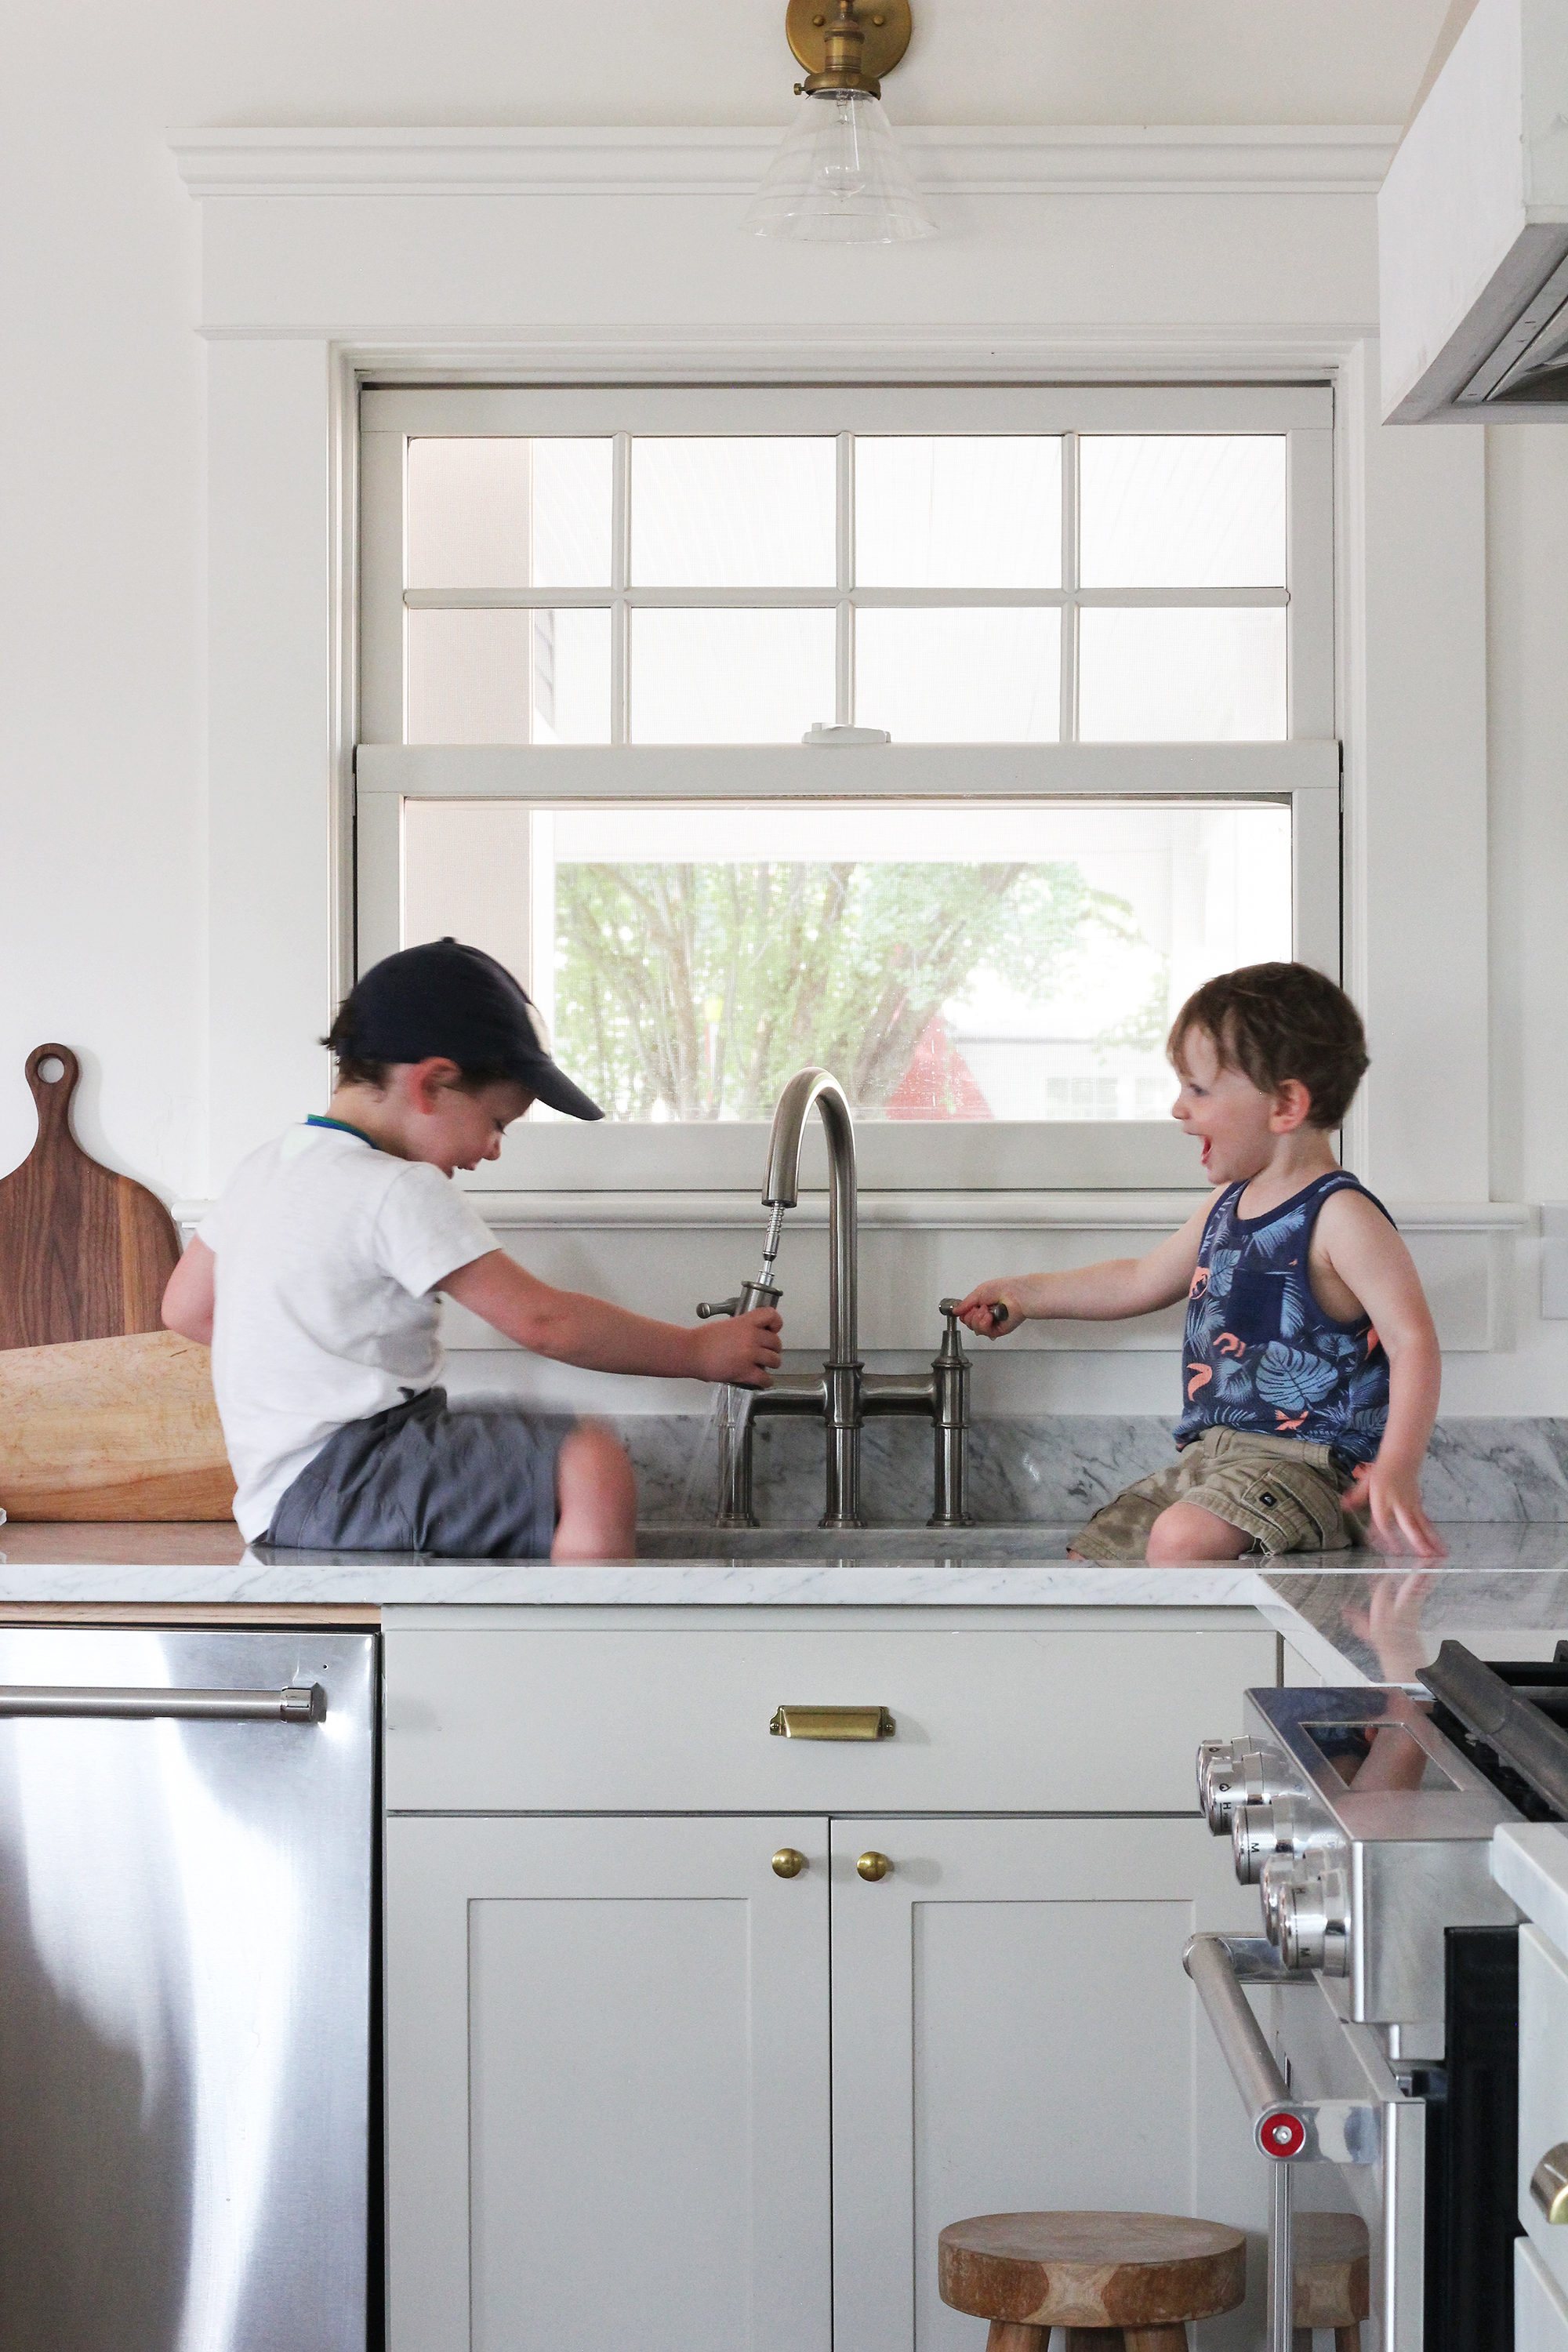 The Grit and Polish - Porch Kitchen Boys in Elkay Sink 5.2